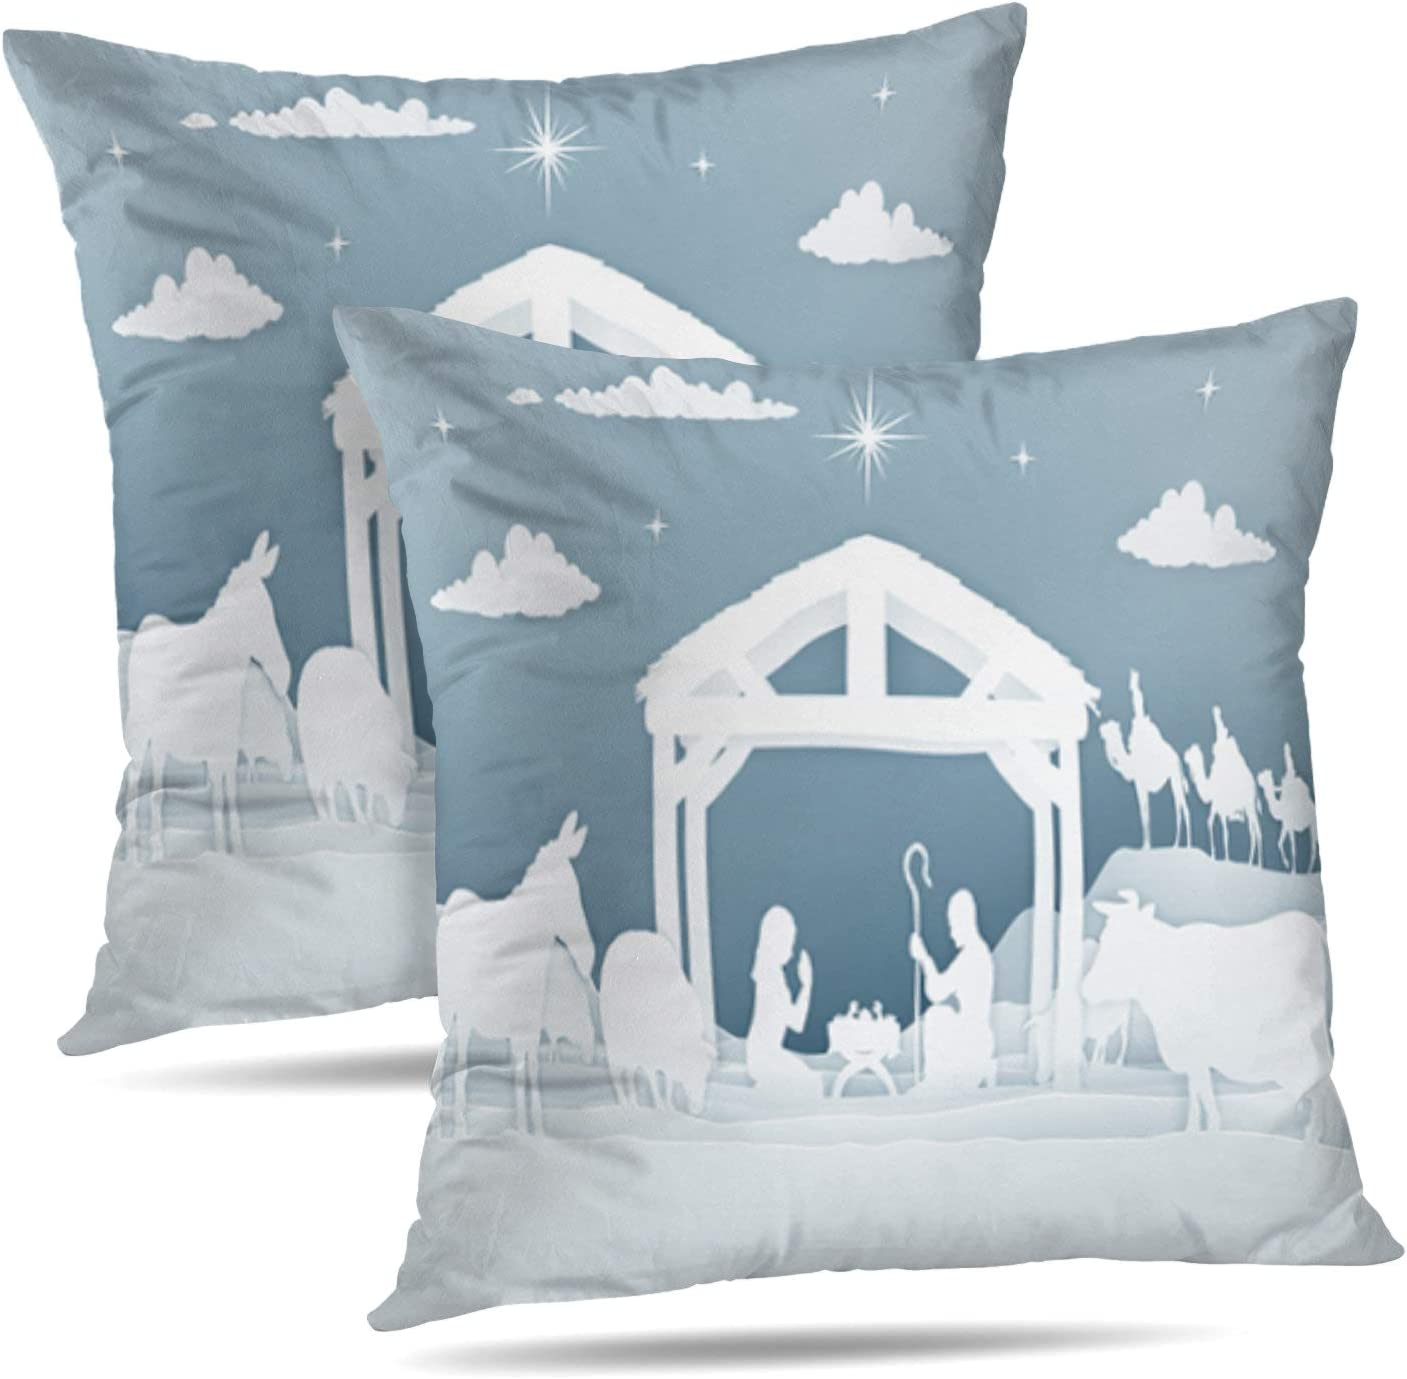 Set of 2 LILALO Throw Pillow Covers